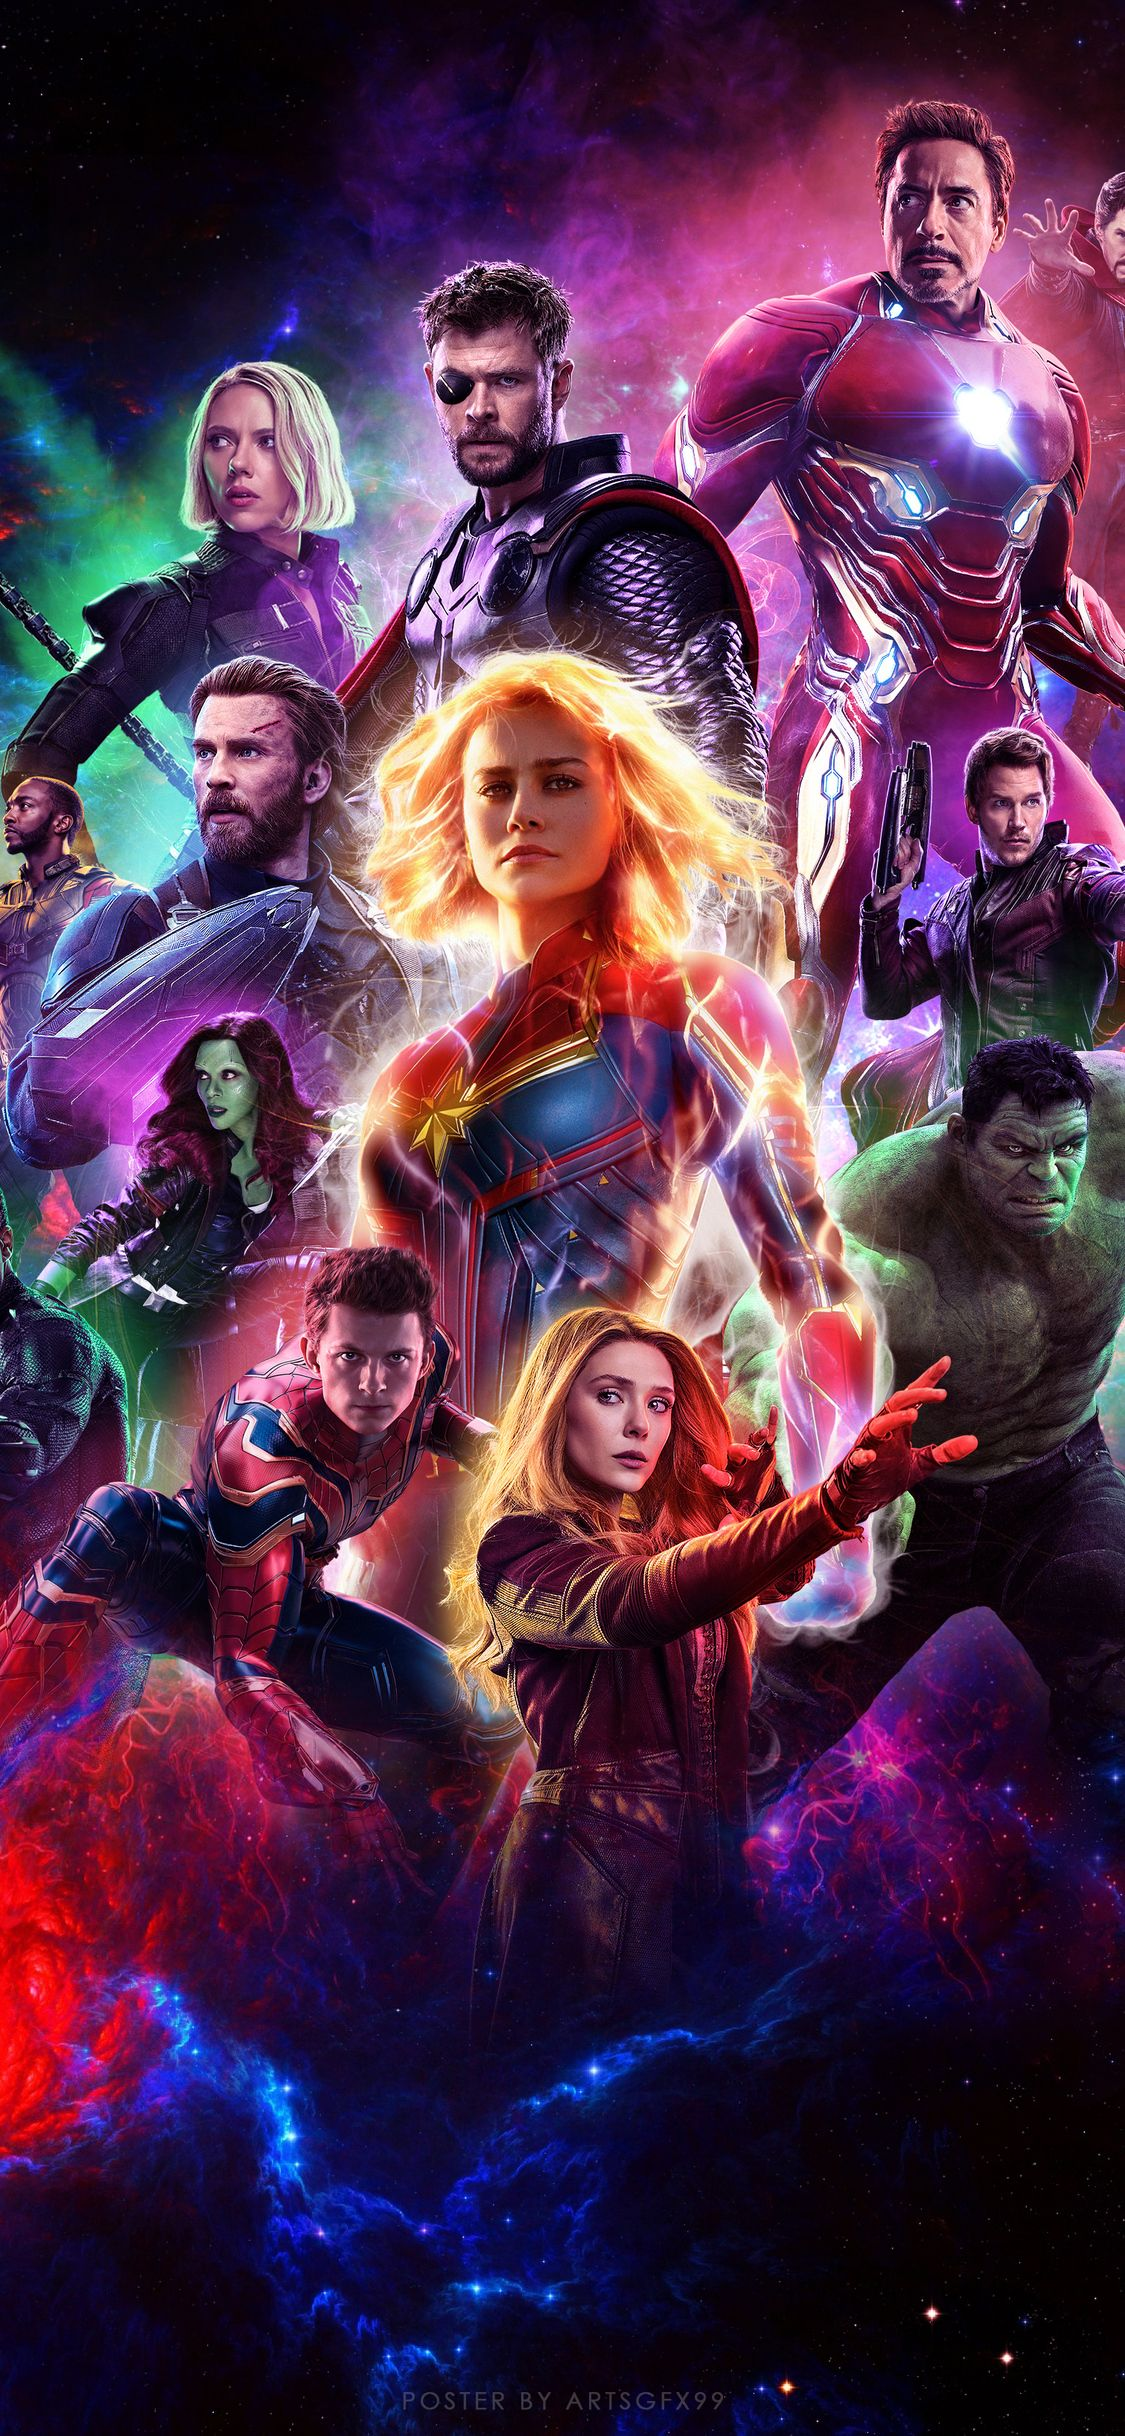 1125x2436 Avengers Endgame 2019 Iphone Xs Iphone 10 Iphone X Hd 4k Wallpapers Images Backgrounds Photo Marvel Superheroes Avengers Movies Avengers Wallpaper